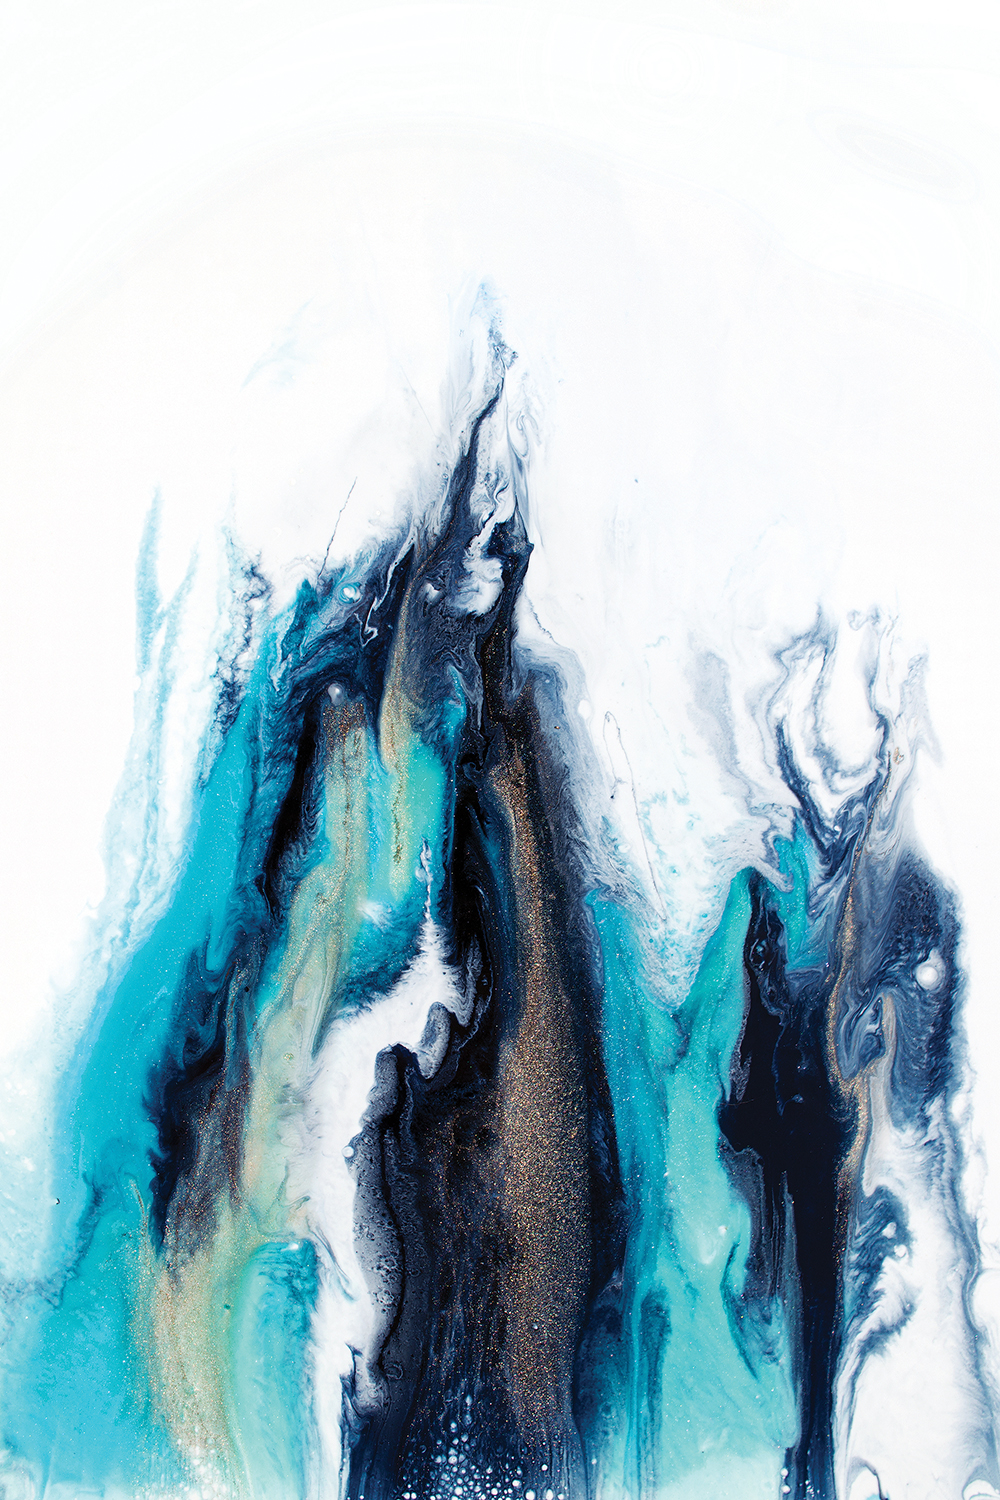 Abstract image resembling rising smoke or dripping liquid in blue, black, gray and white